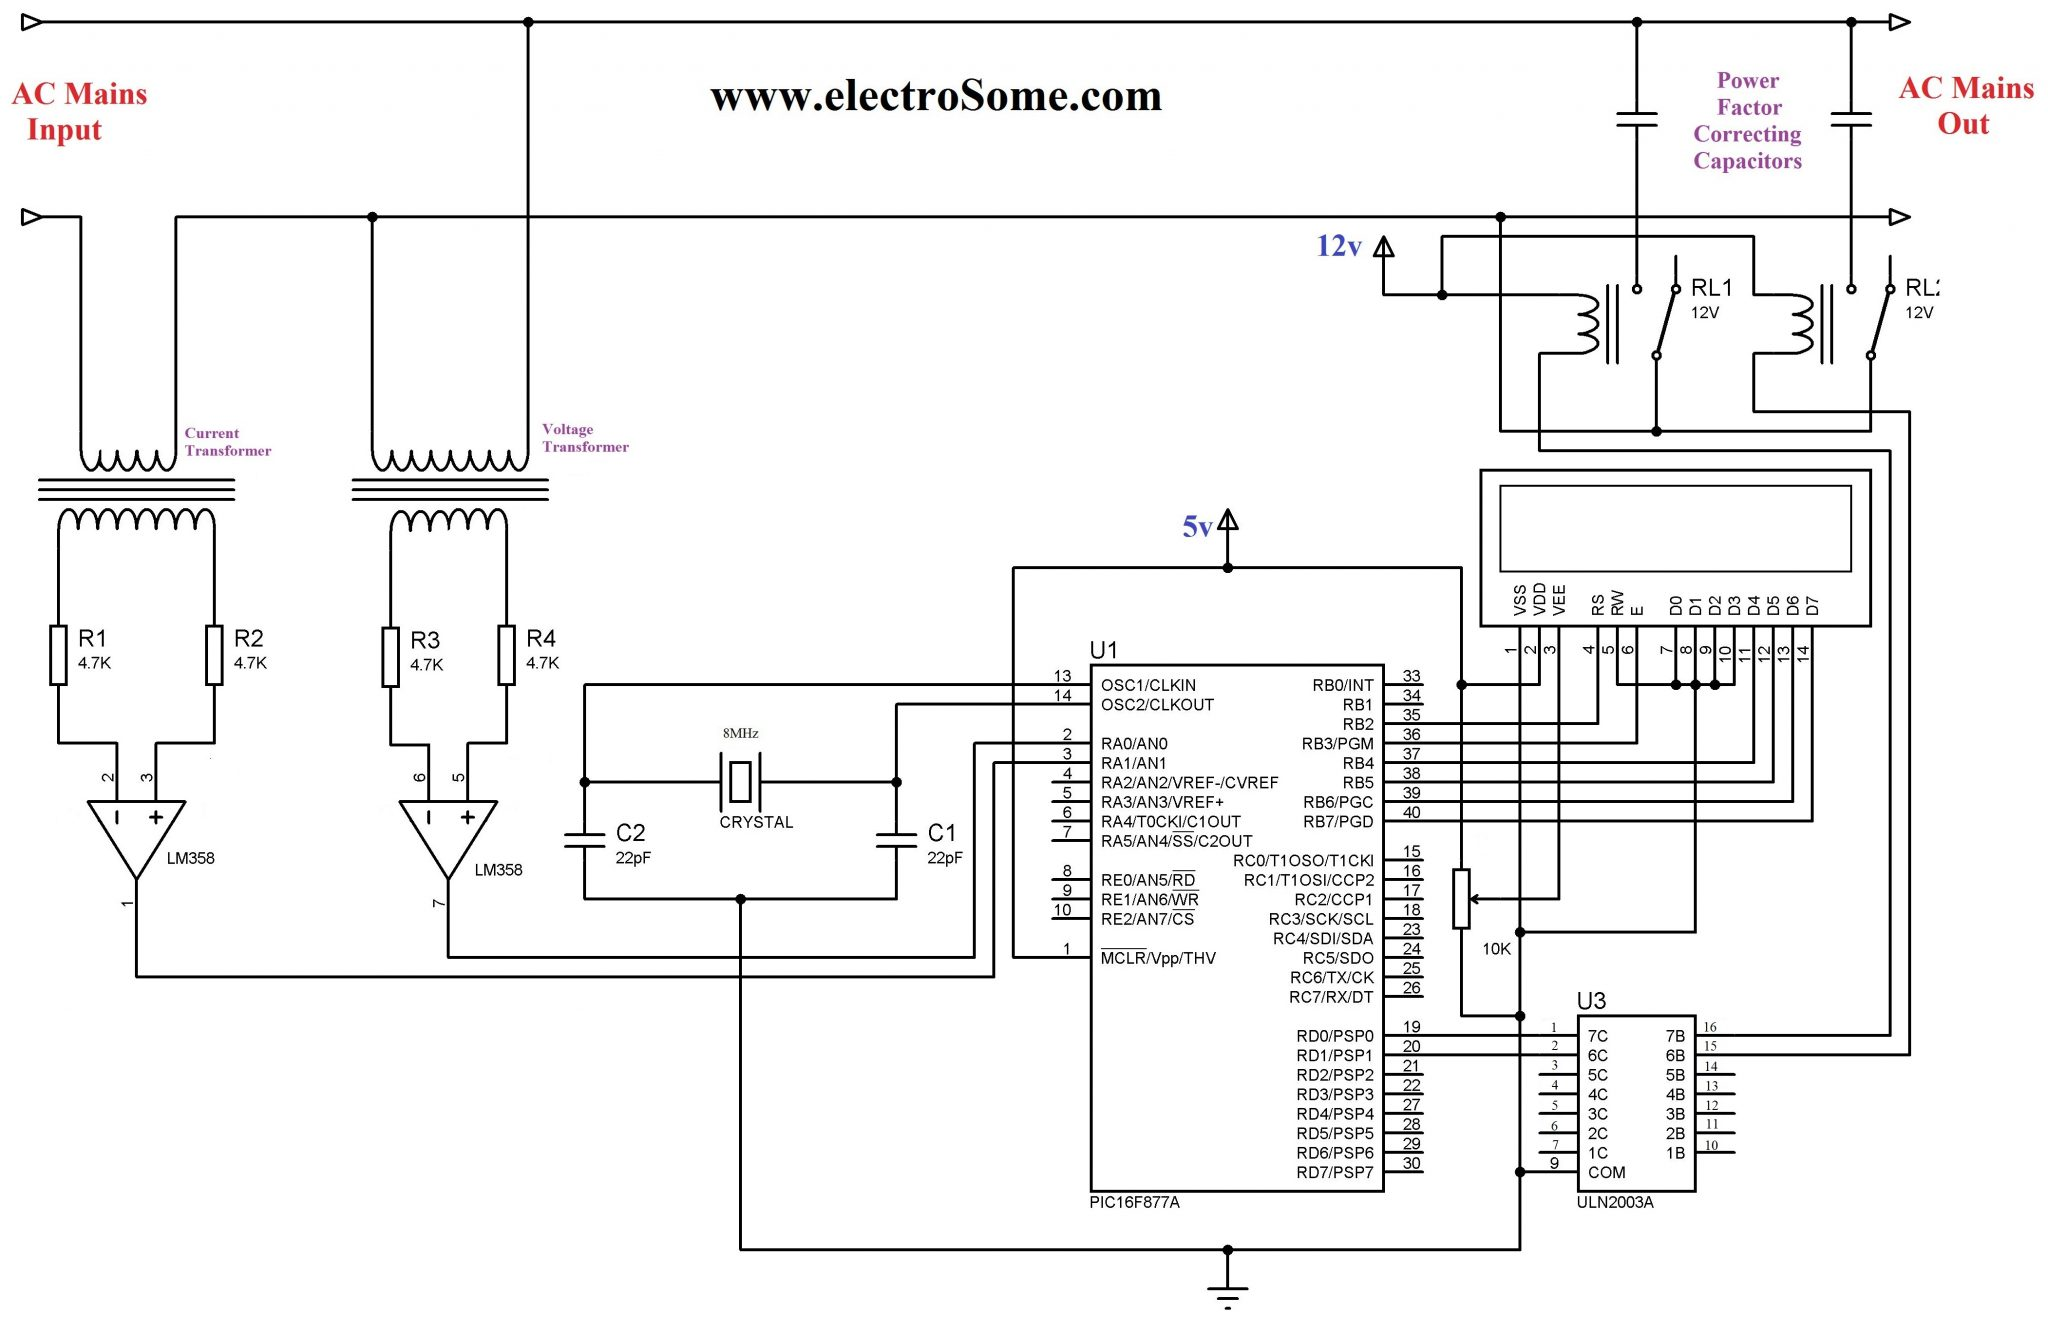 milbank meter socket wiring diagram electric meter base wiring diagram electric discover your wiring power factor meter schematic diagram